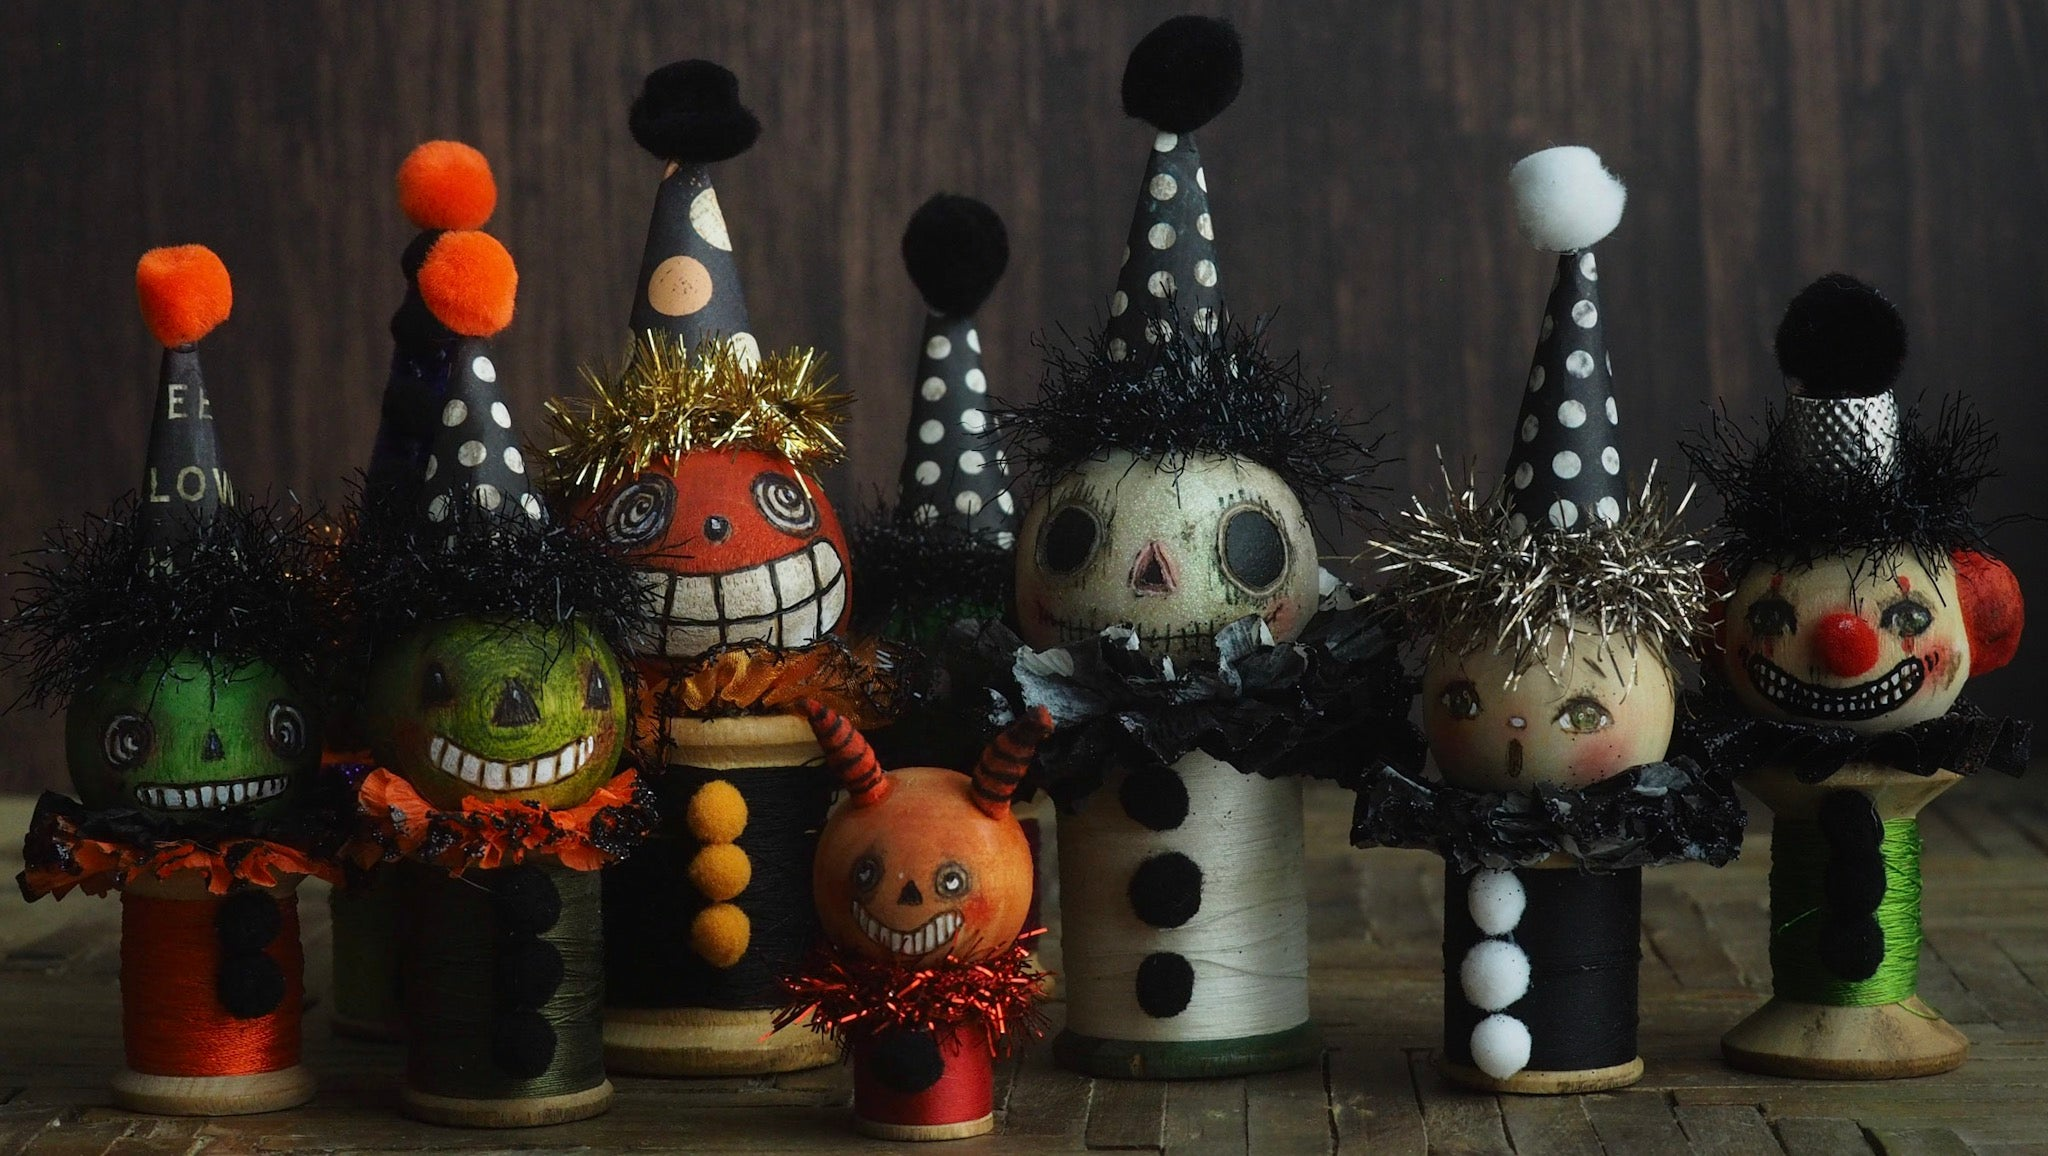 Frankenstein's monster - Vintage thread spool kokeshi Halloween art doll by Danita, Miniature Dolls by Danita Art